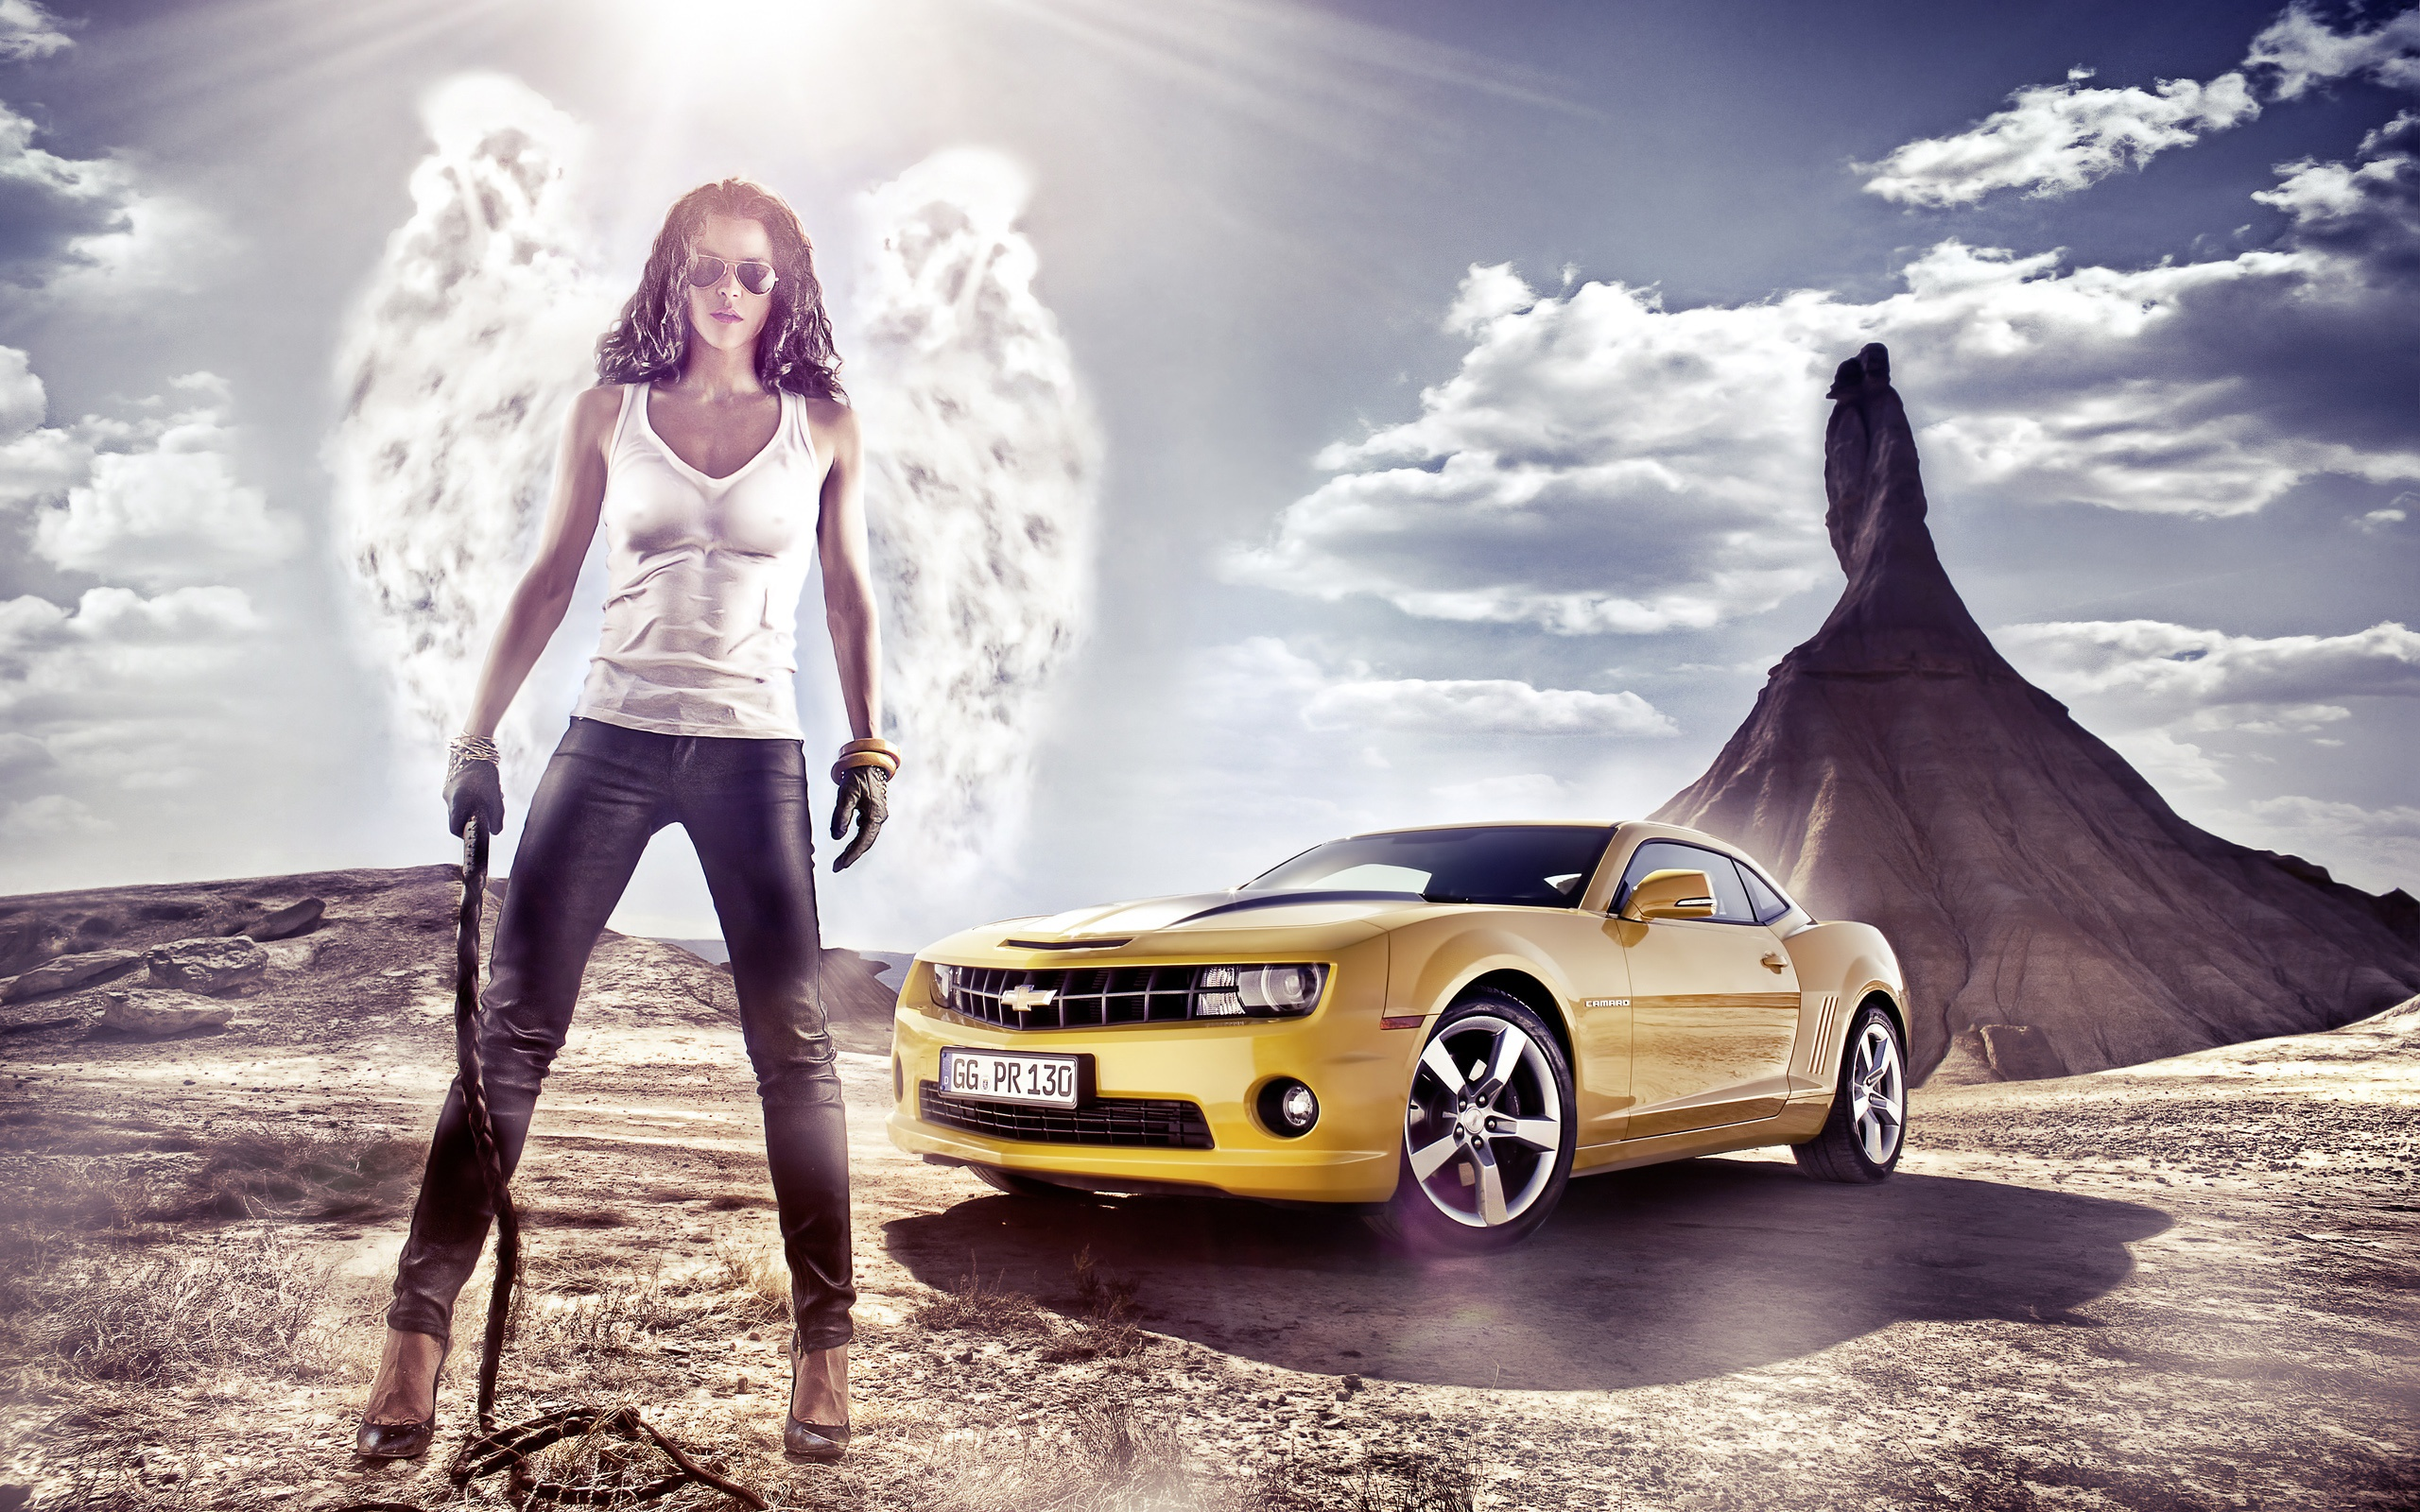 Wallpaper Girl With Chevrolet Car 2560x1600 HD Picture Image